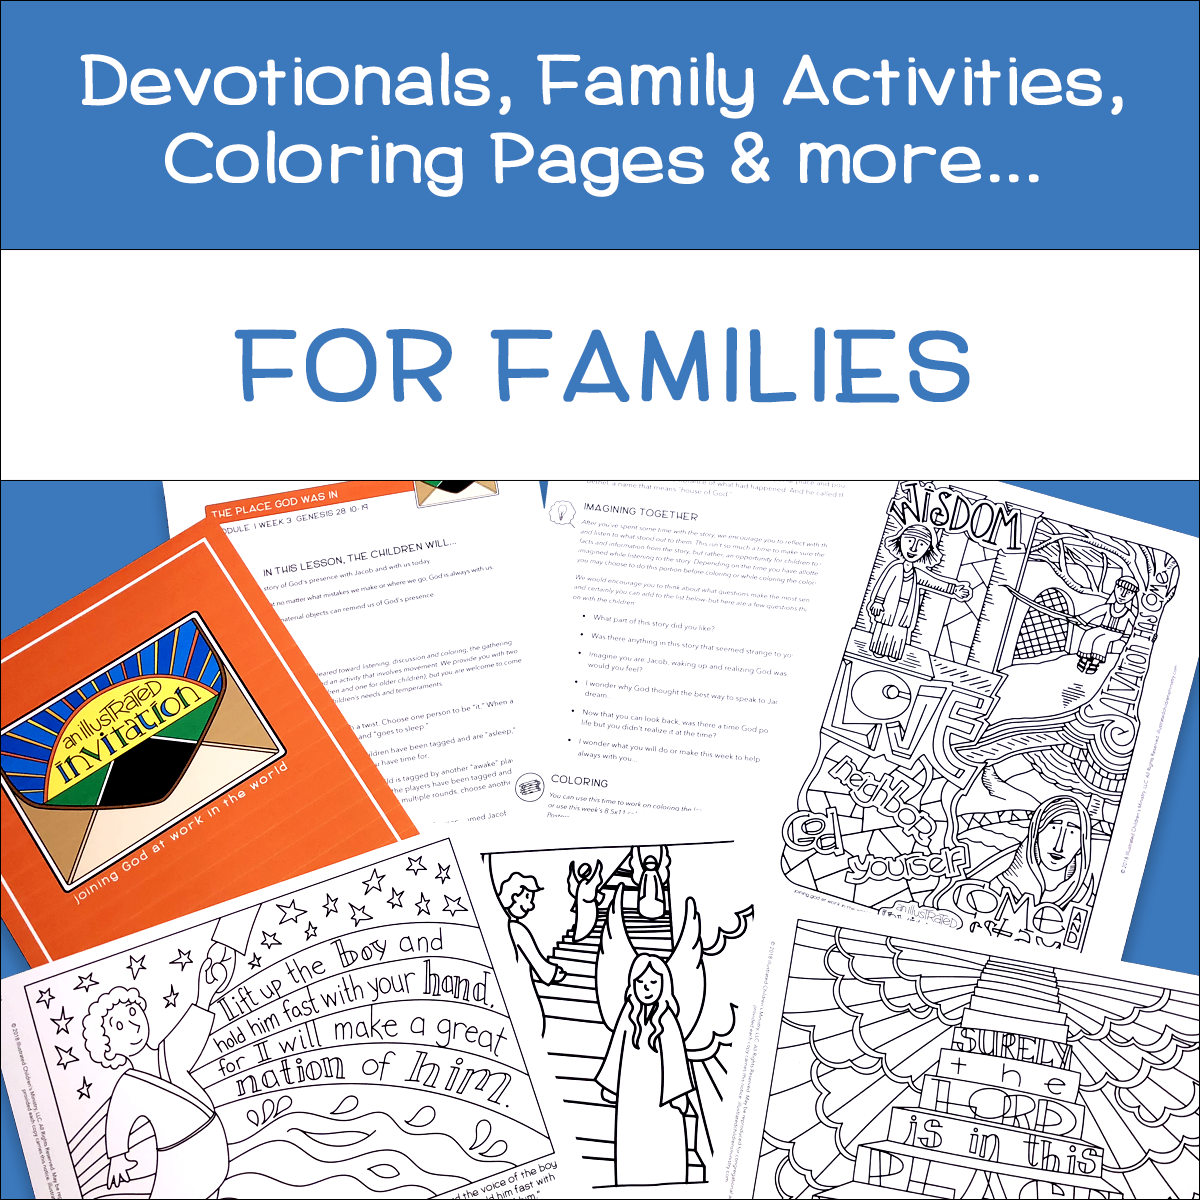 Family Devotions - Devotionals and Coloring